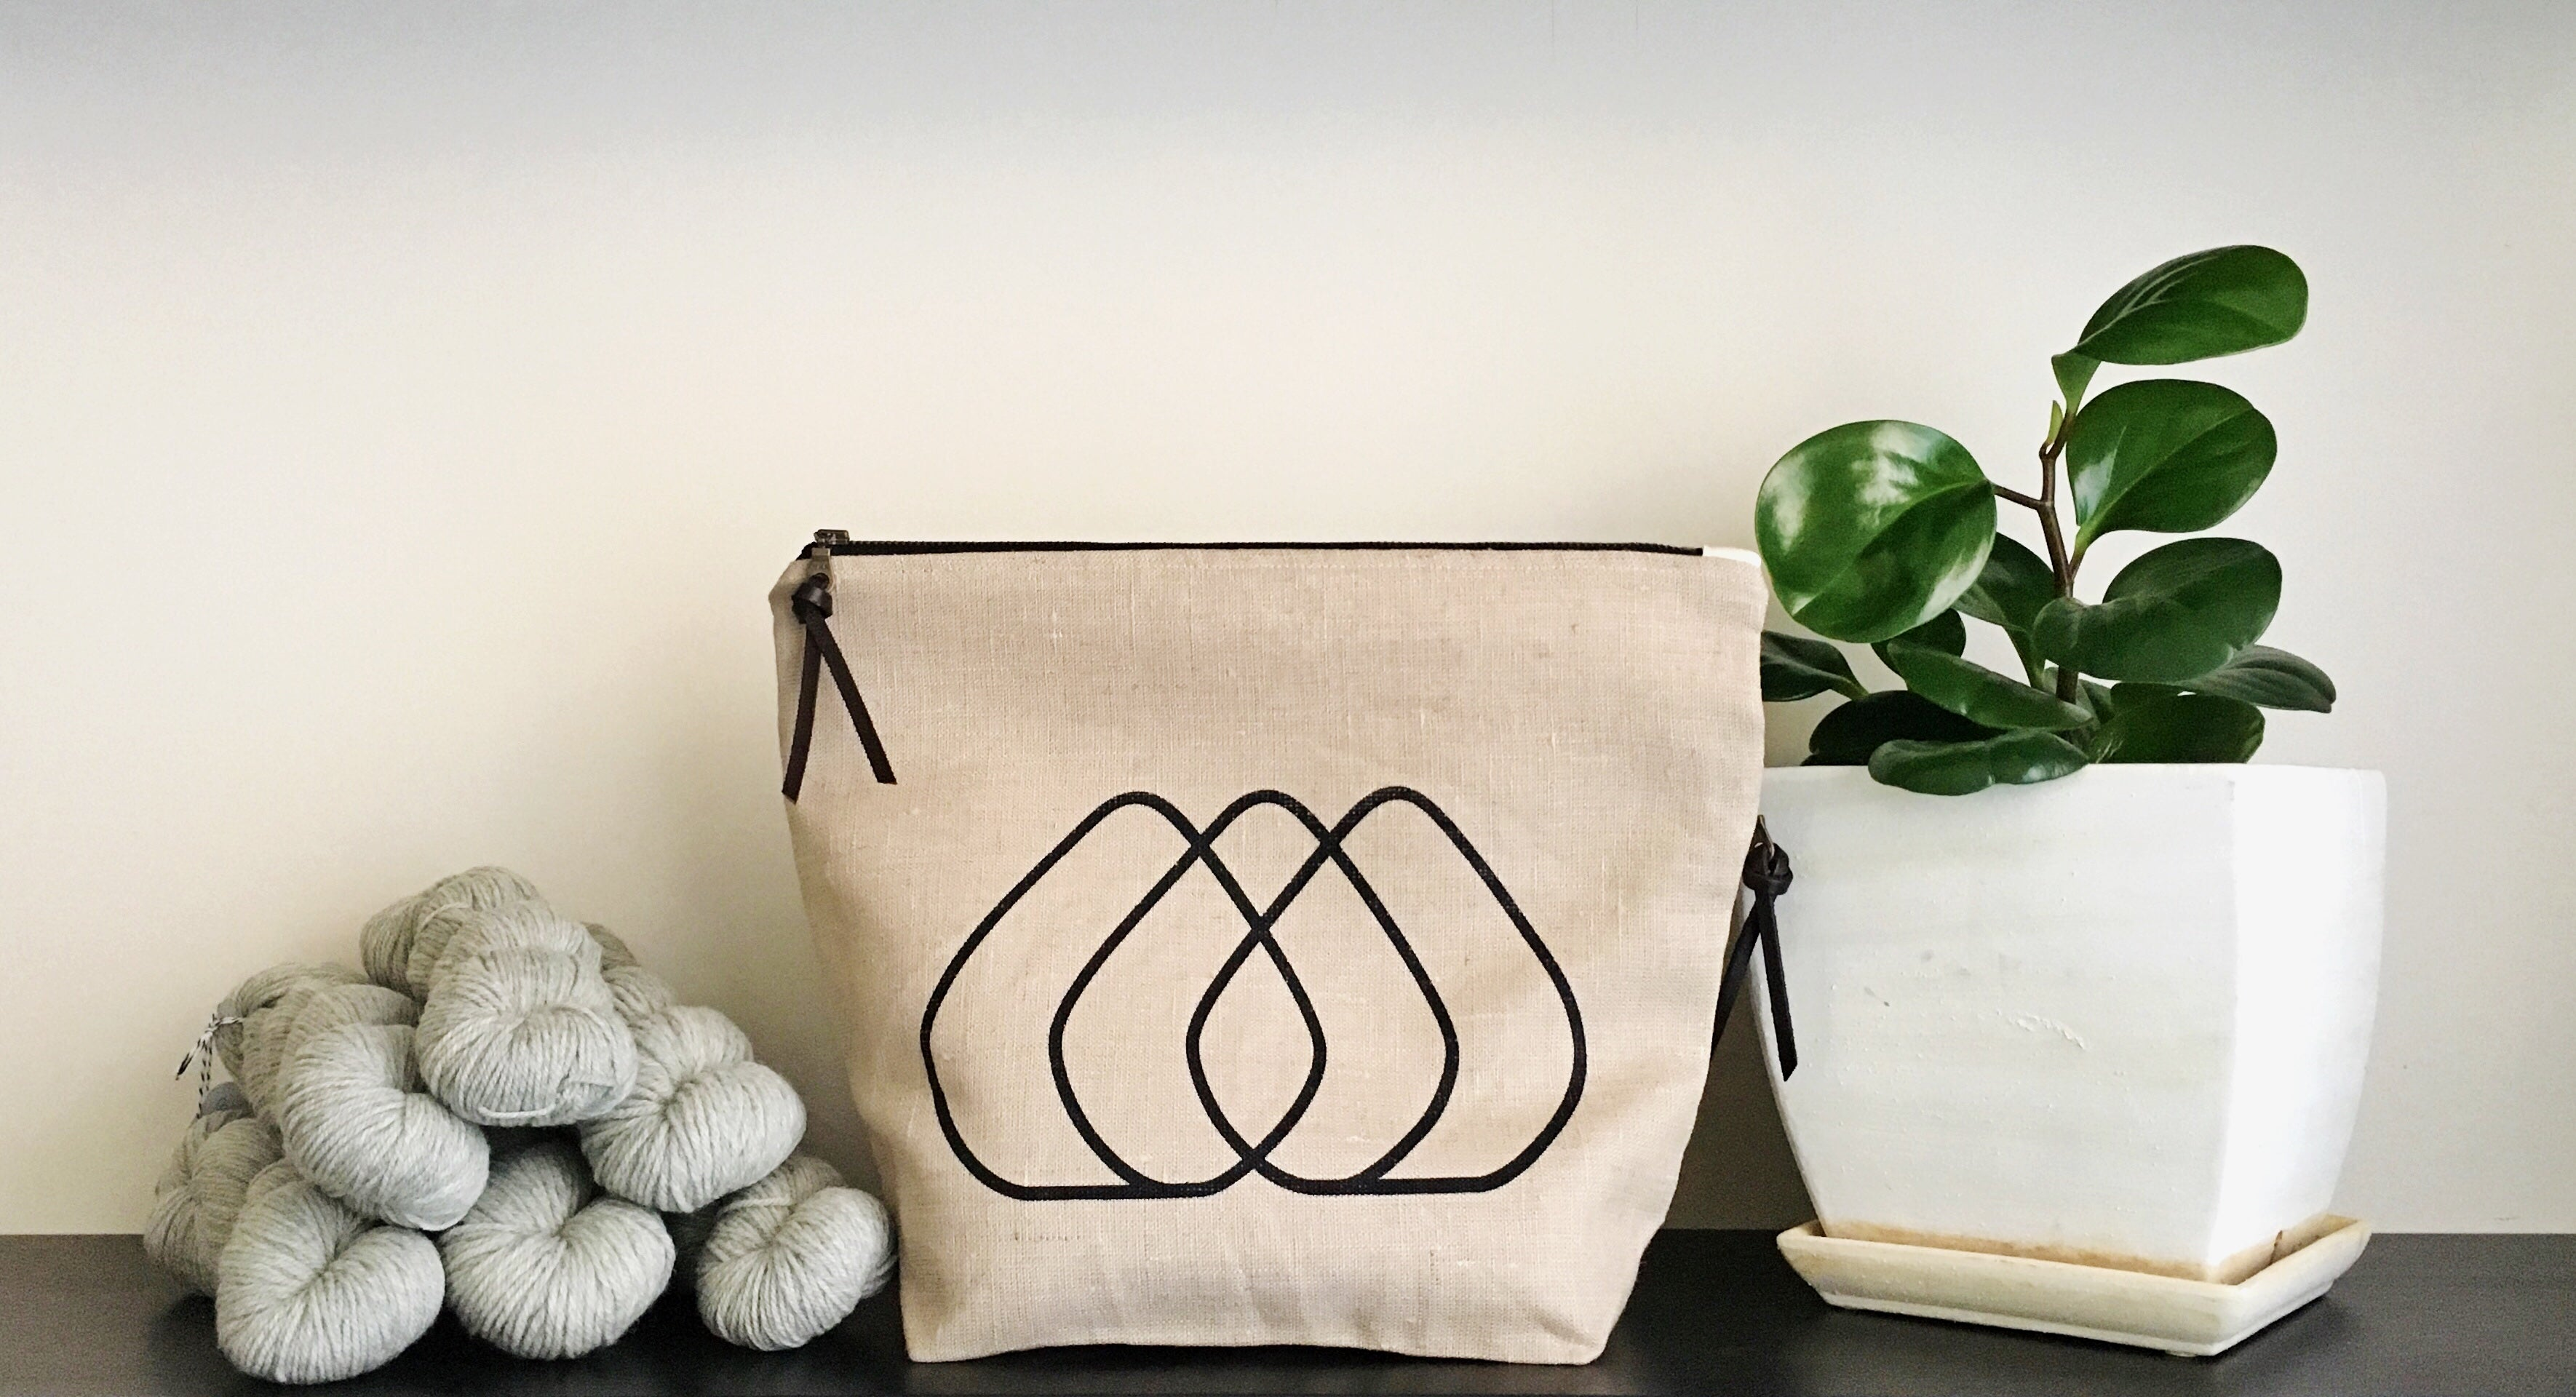 pearadise island screen printed logo zipper project bag / knitting bag / yarn bag / yarn bowl /linen bag / zipper bag